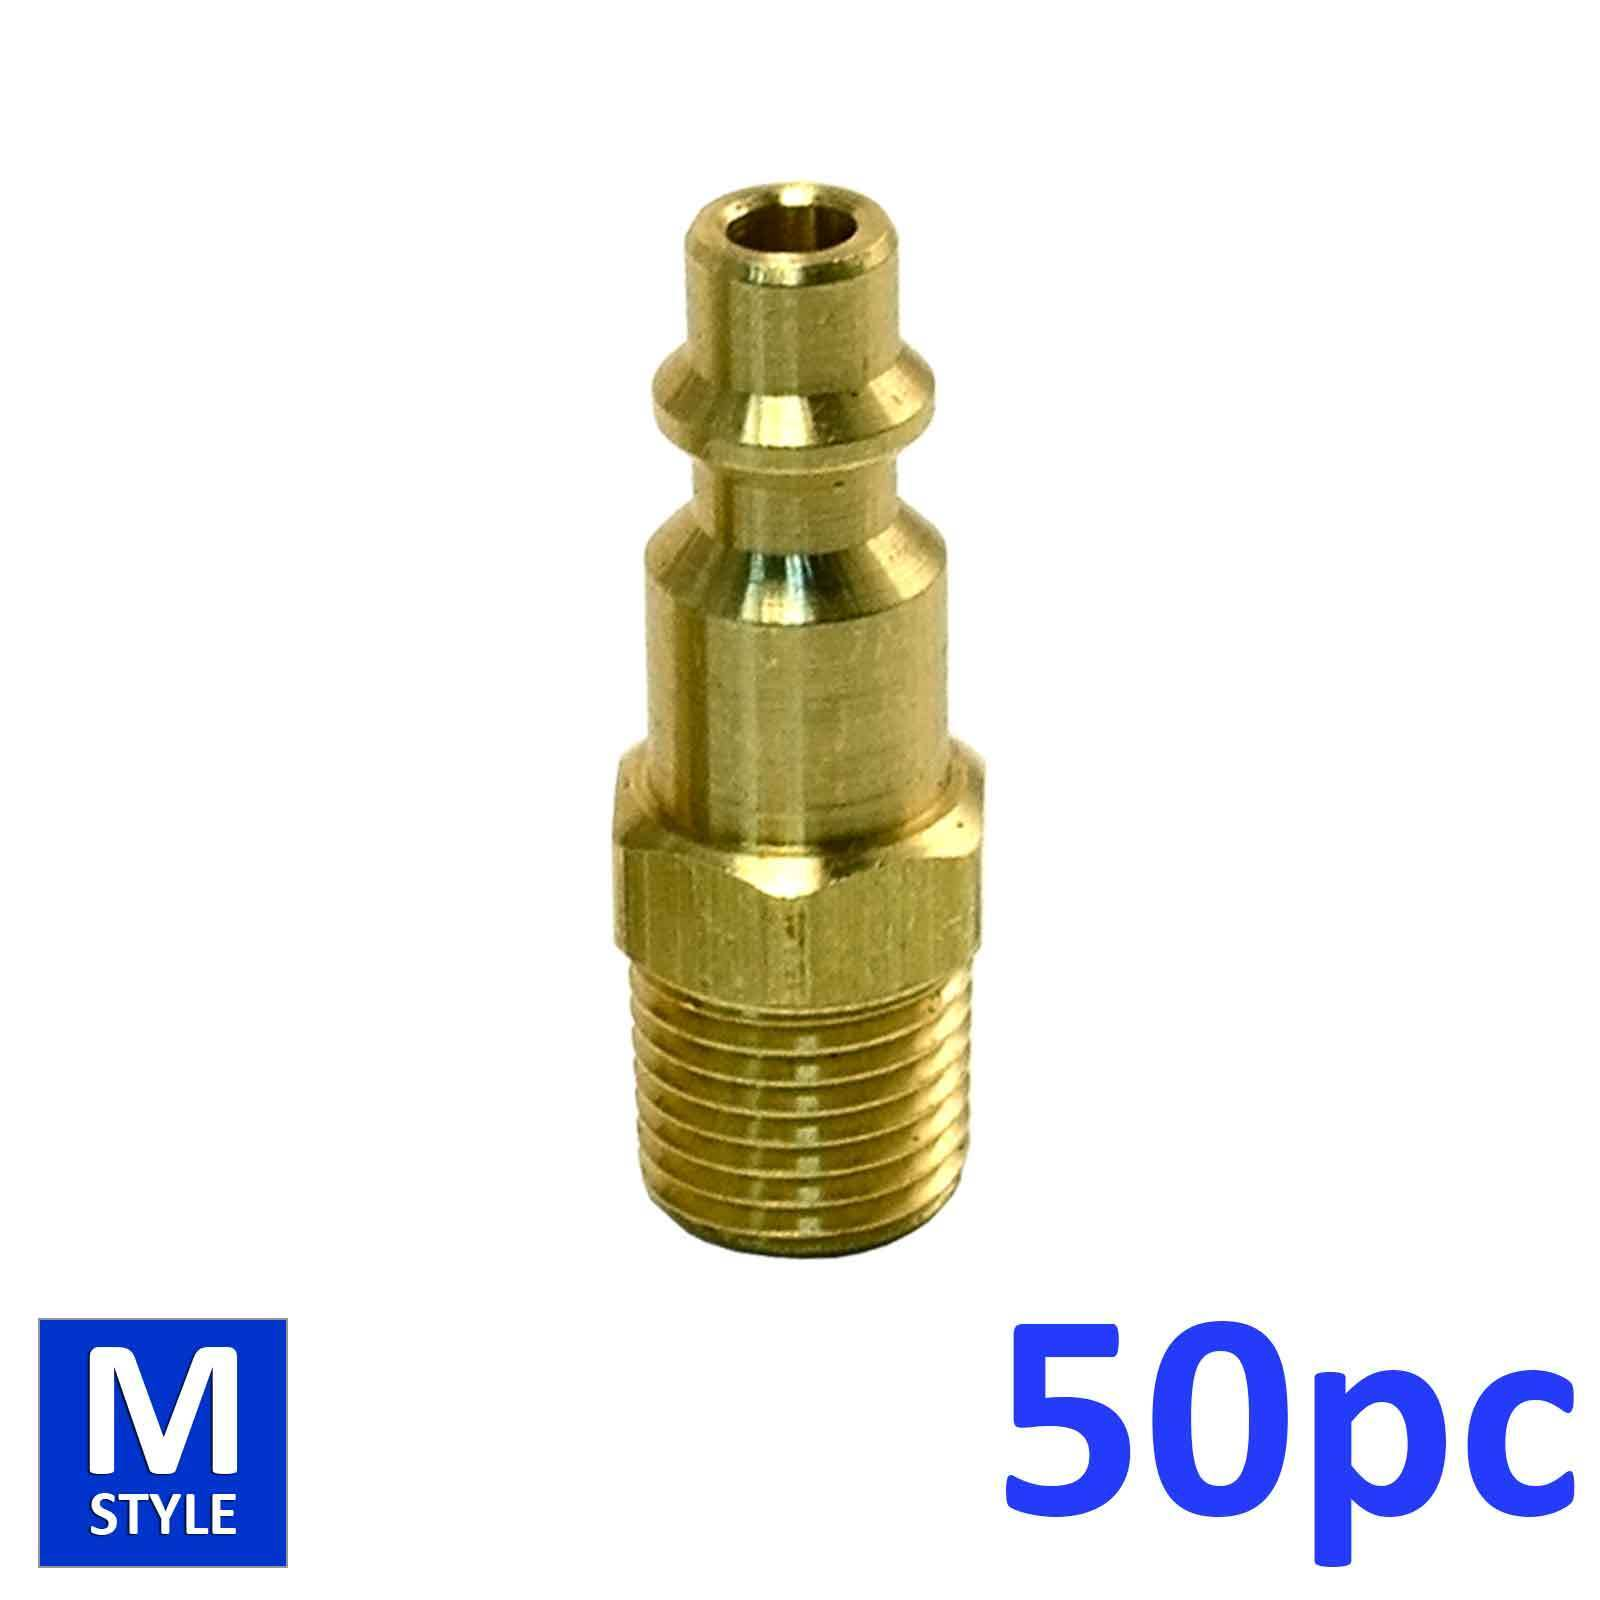 50pc Industrial Solid Brass Air Fittings 1 4  NPT male Milton M type Plug 727